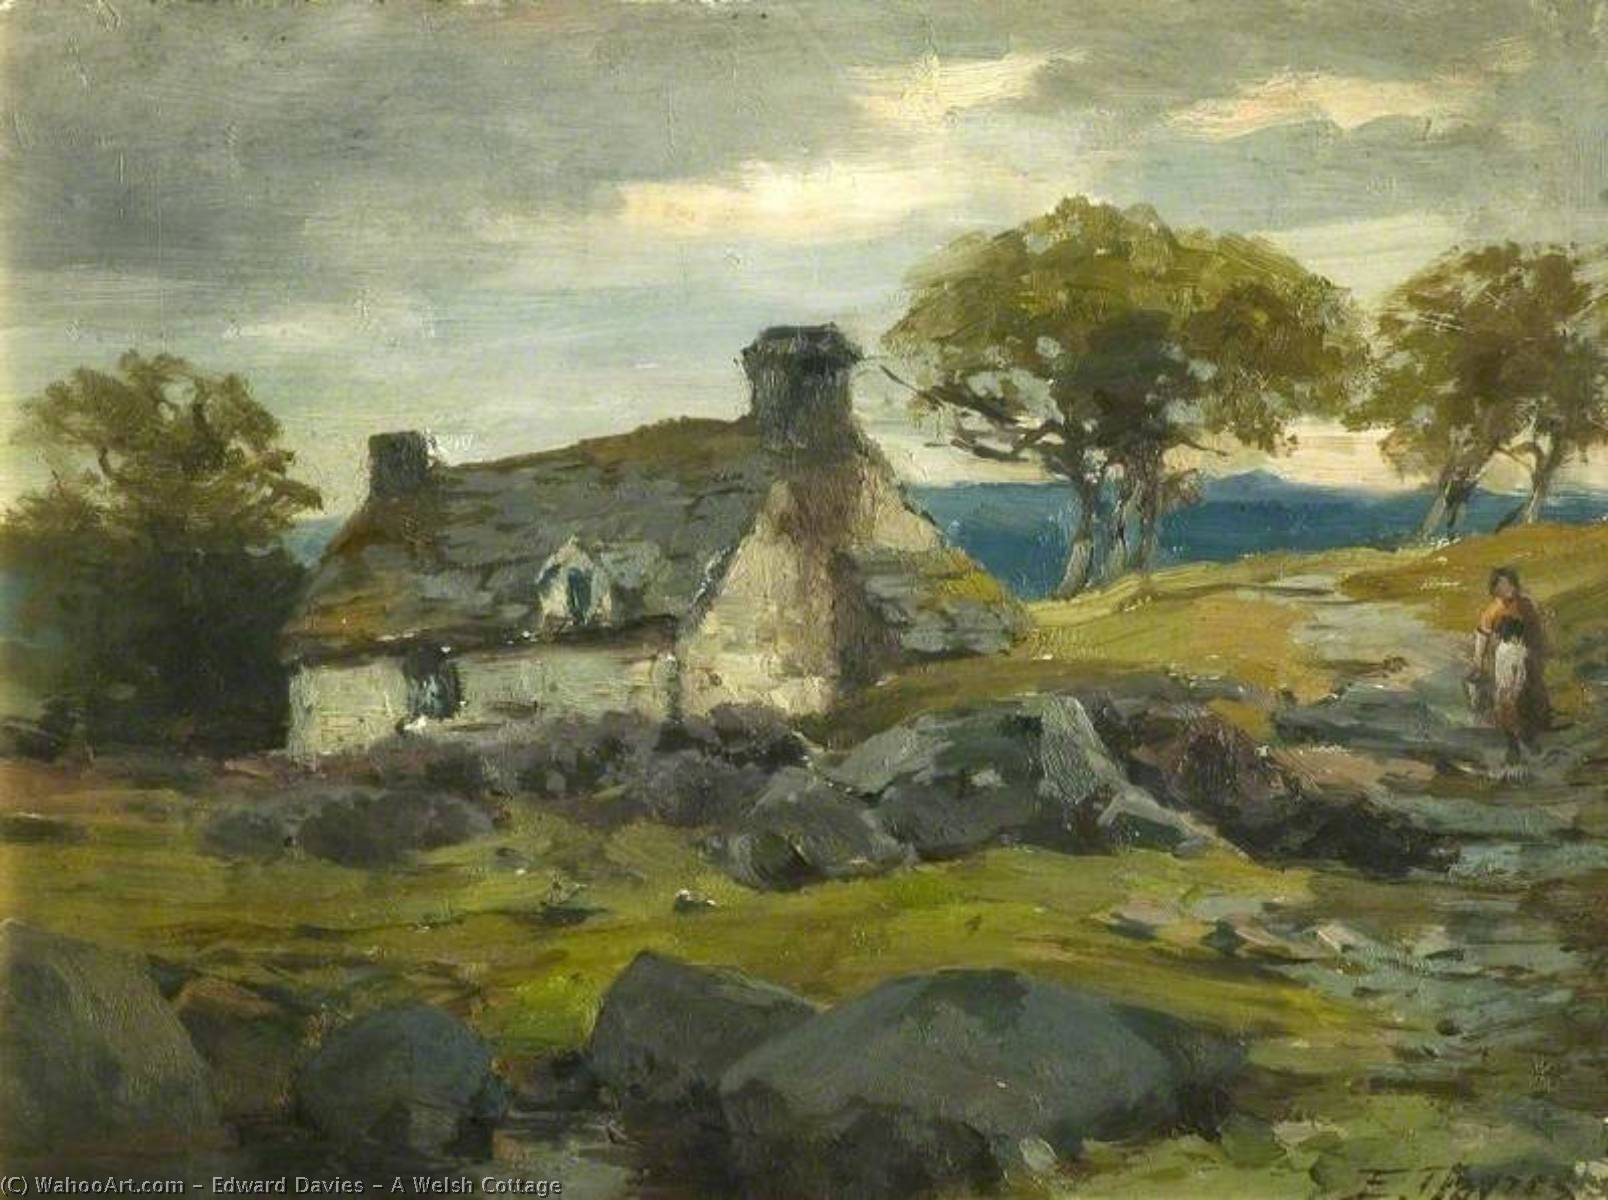 A Welsh Cottage by Edward Davies | Famous Paintings Reproductions | WahooArt.com